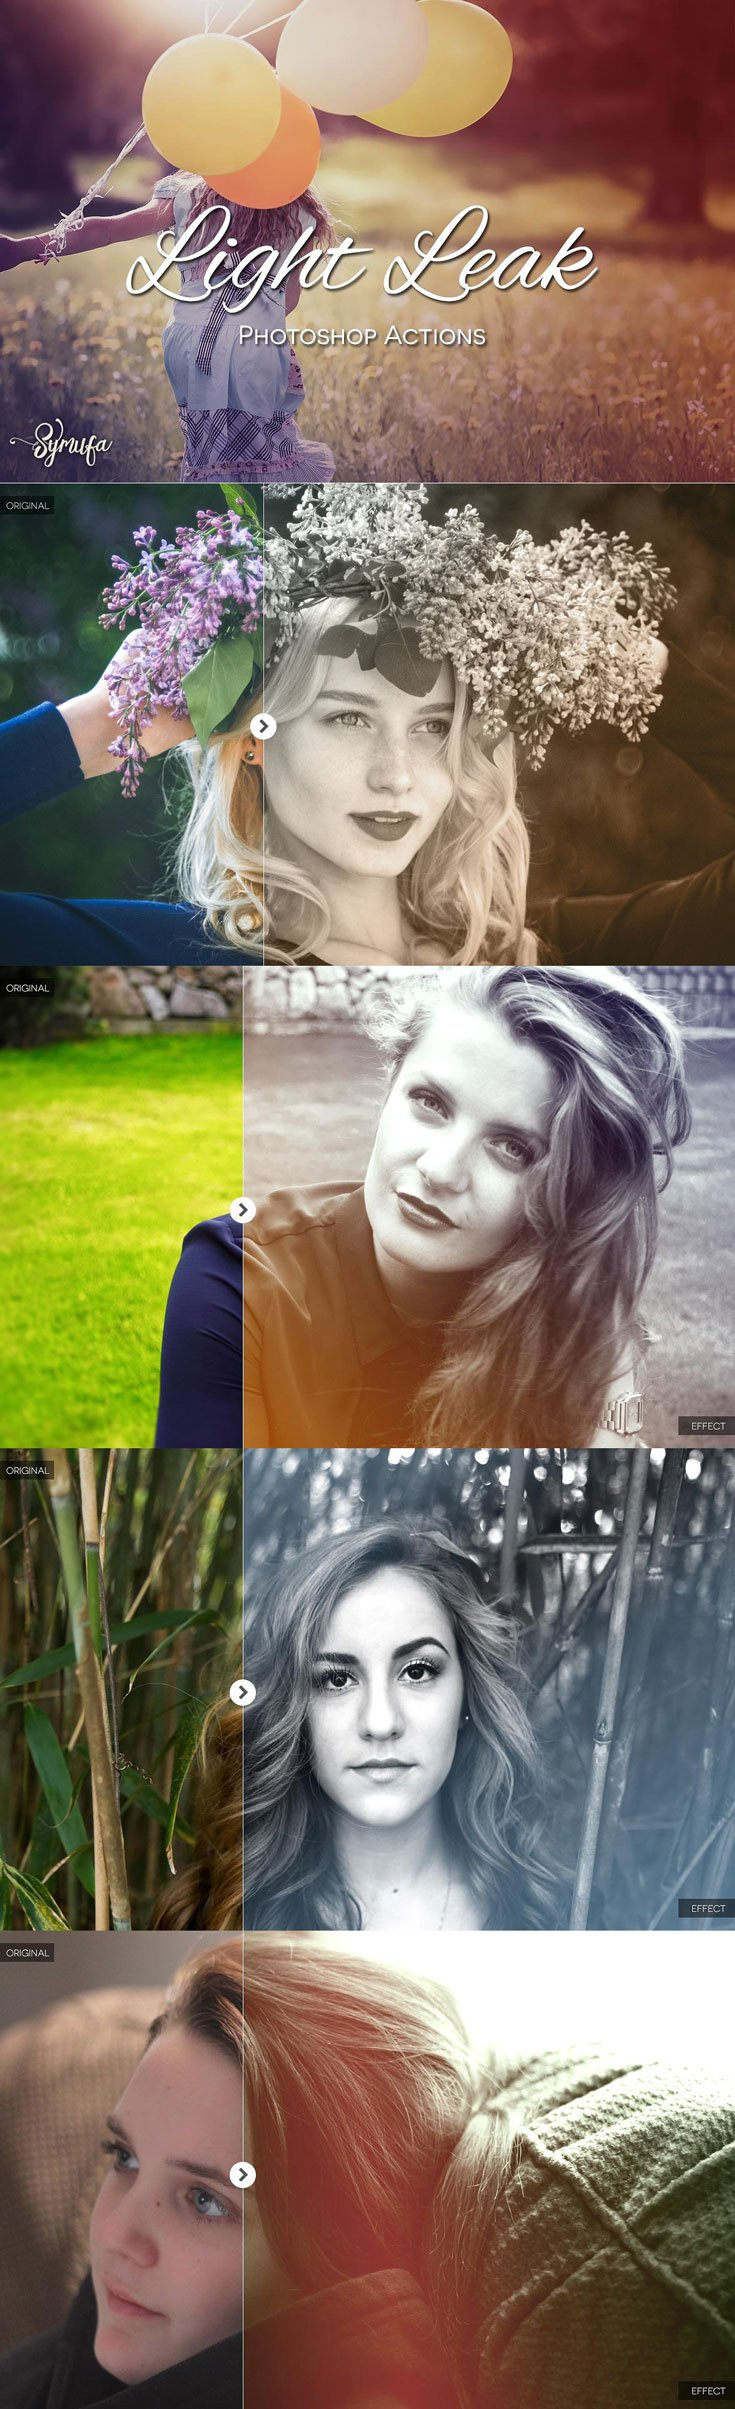 25 Free Light Leaks Photoshop Actions